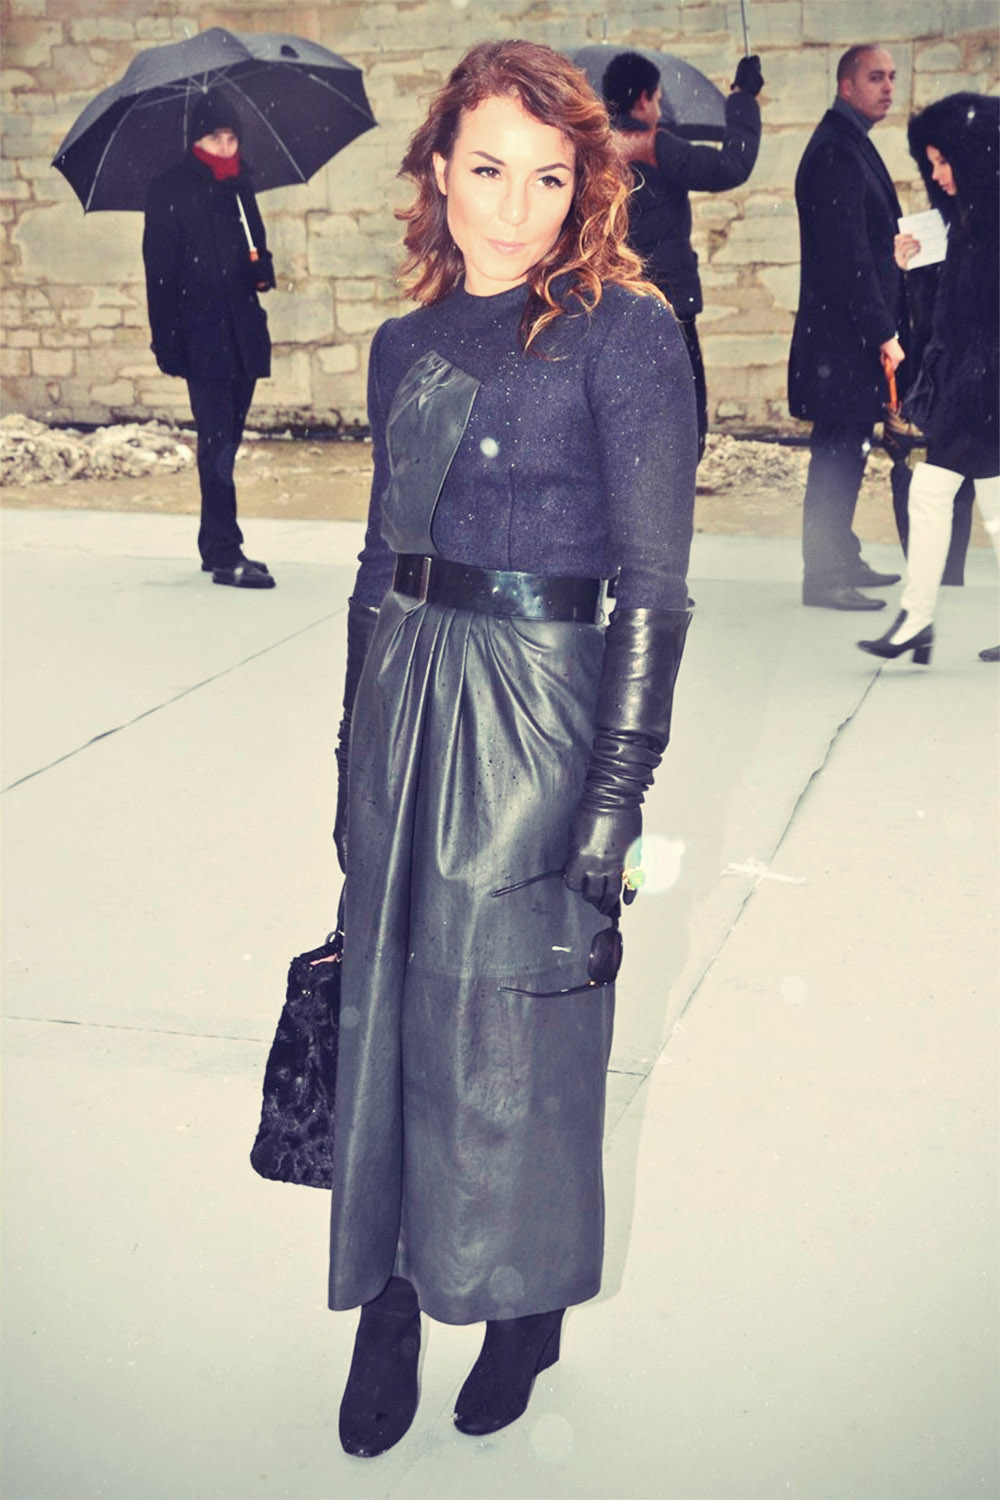 Noomi Rapace attends Paris Fashion Week 2013